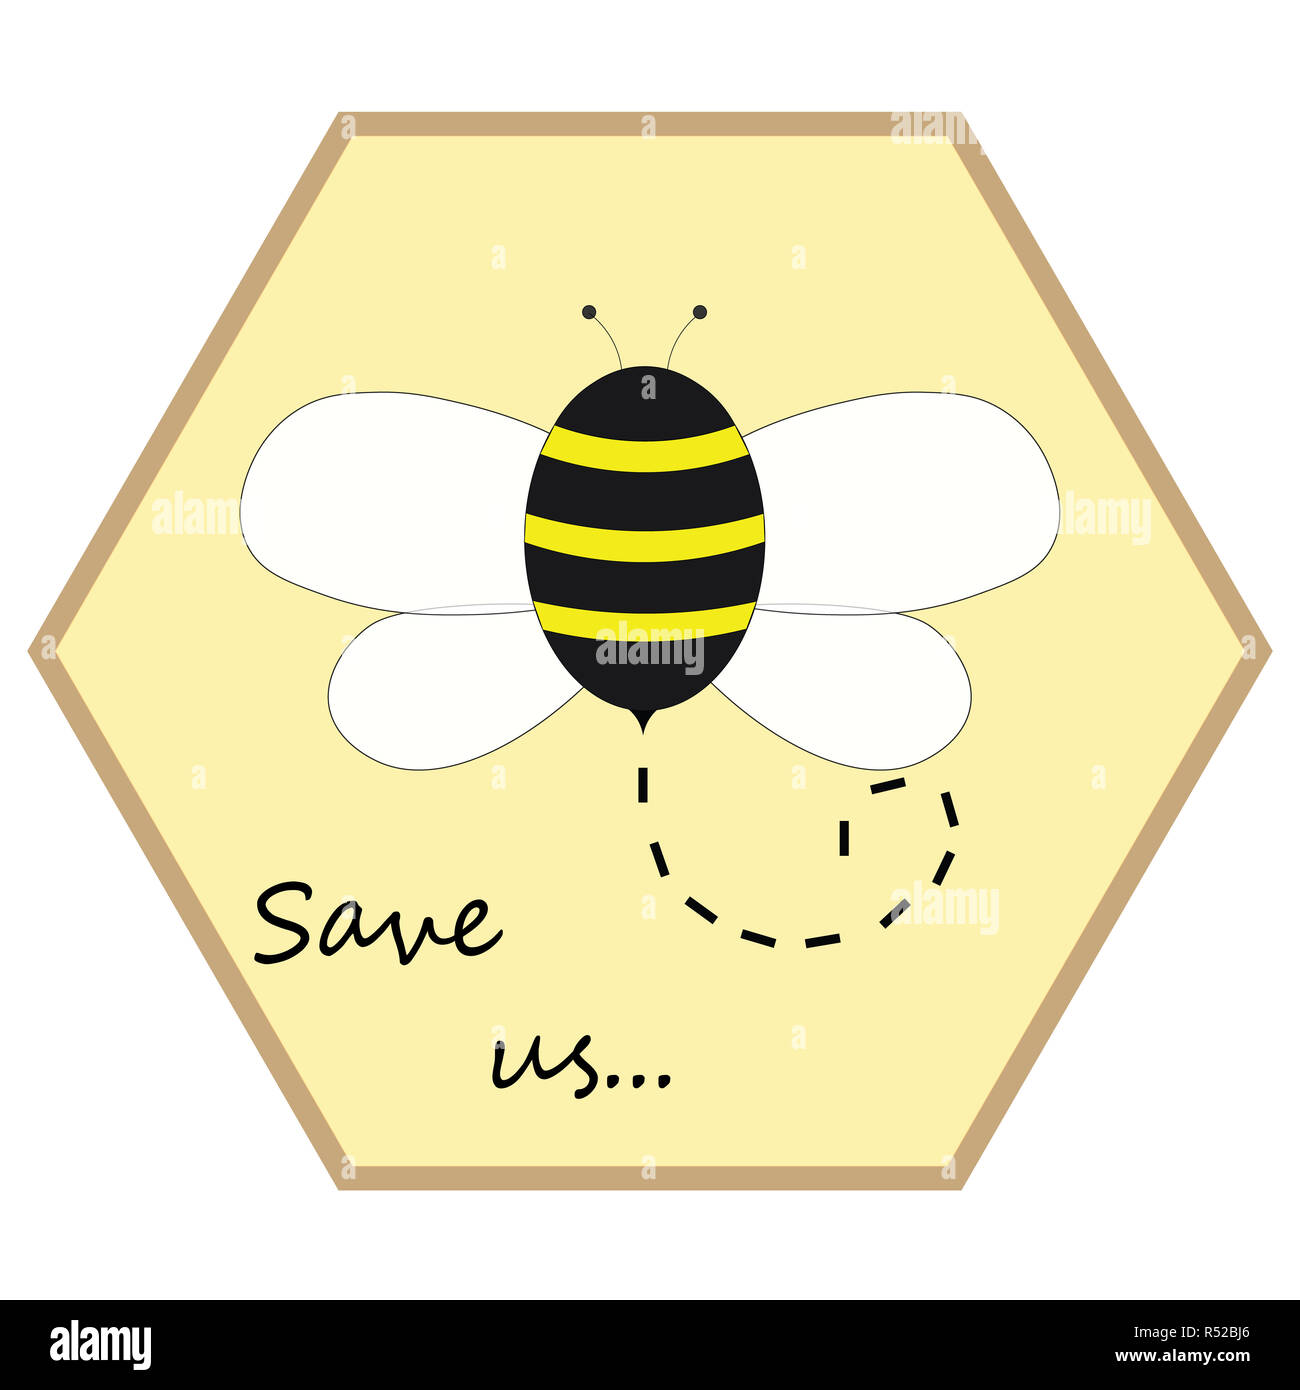 Bee in its hive promoting save the bees - Stock Image